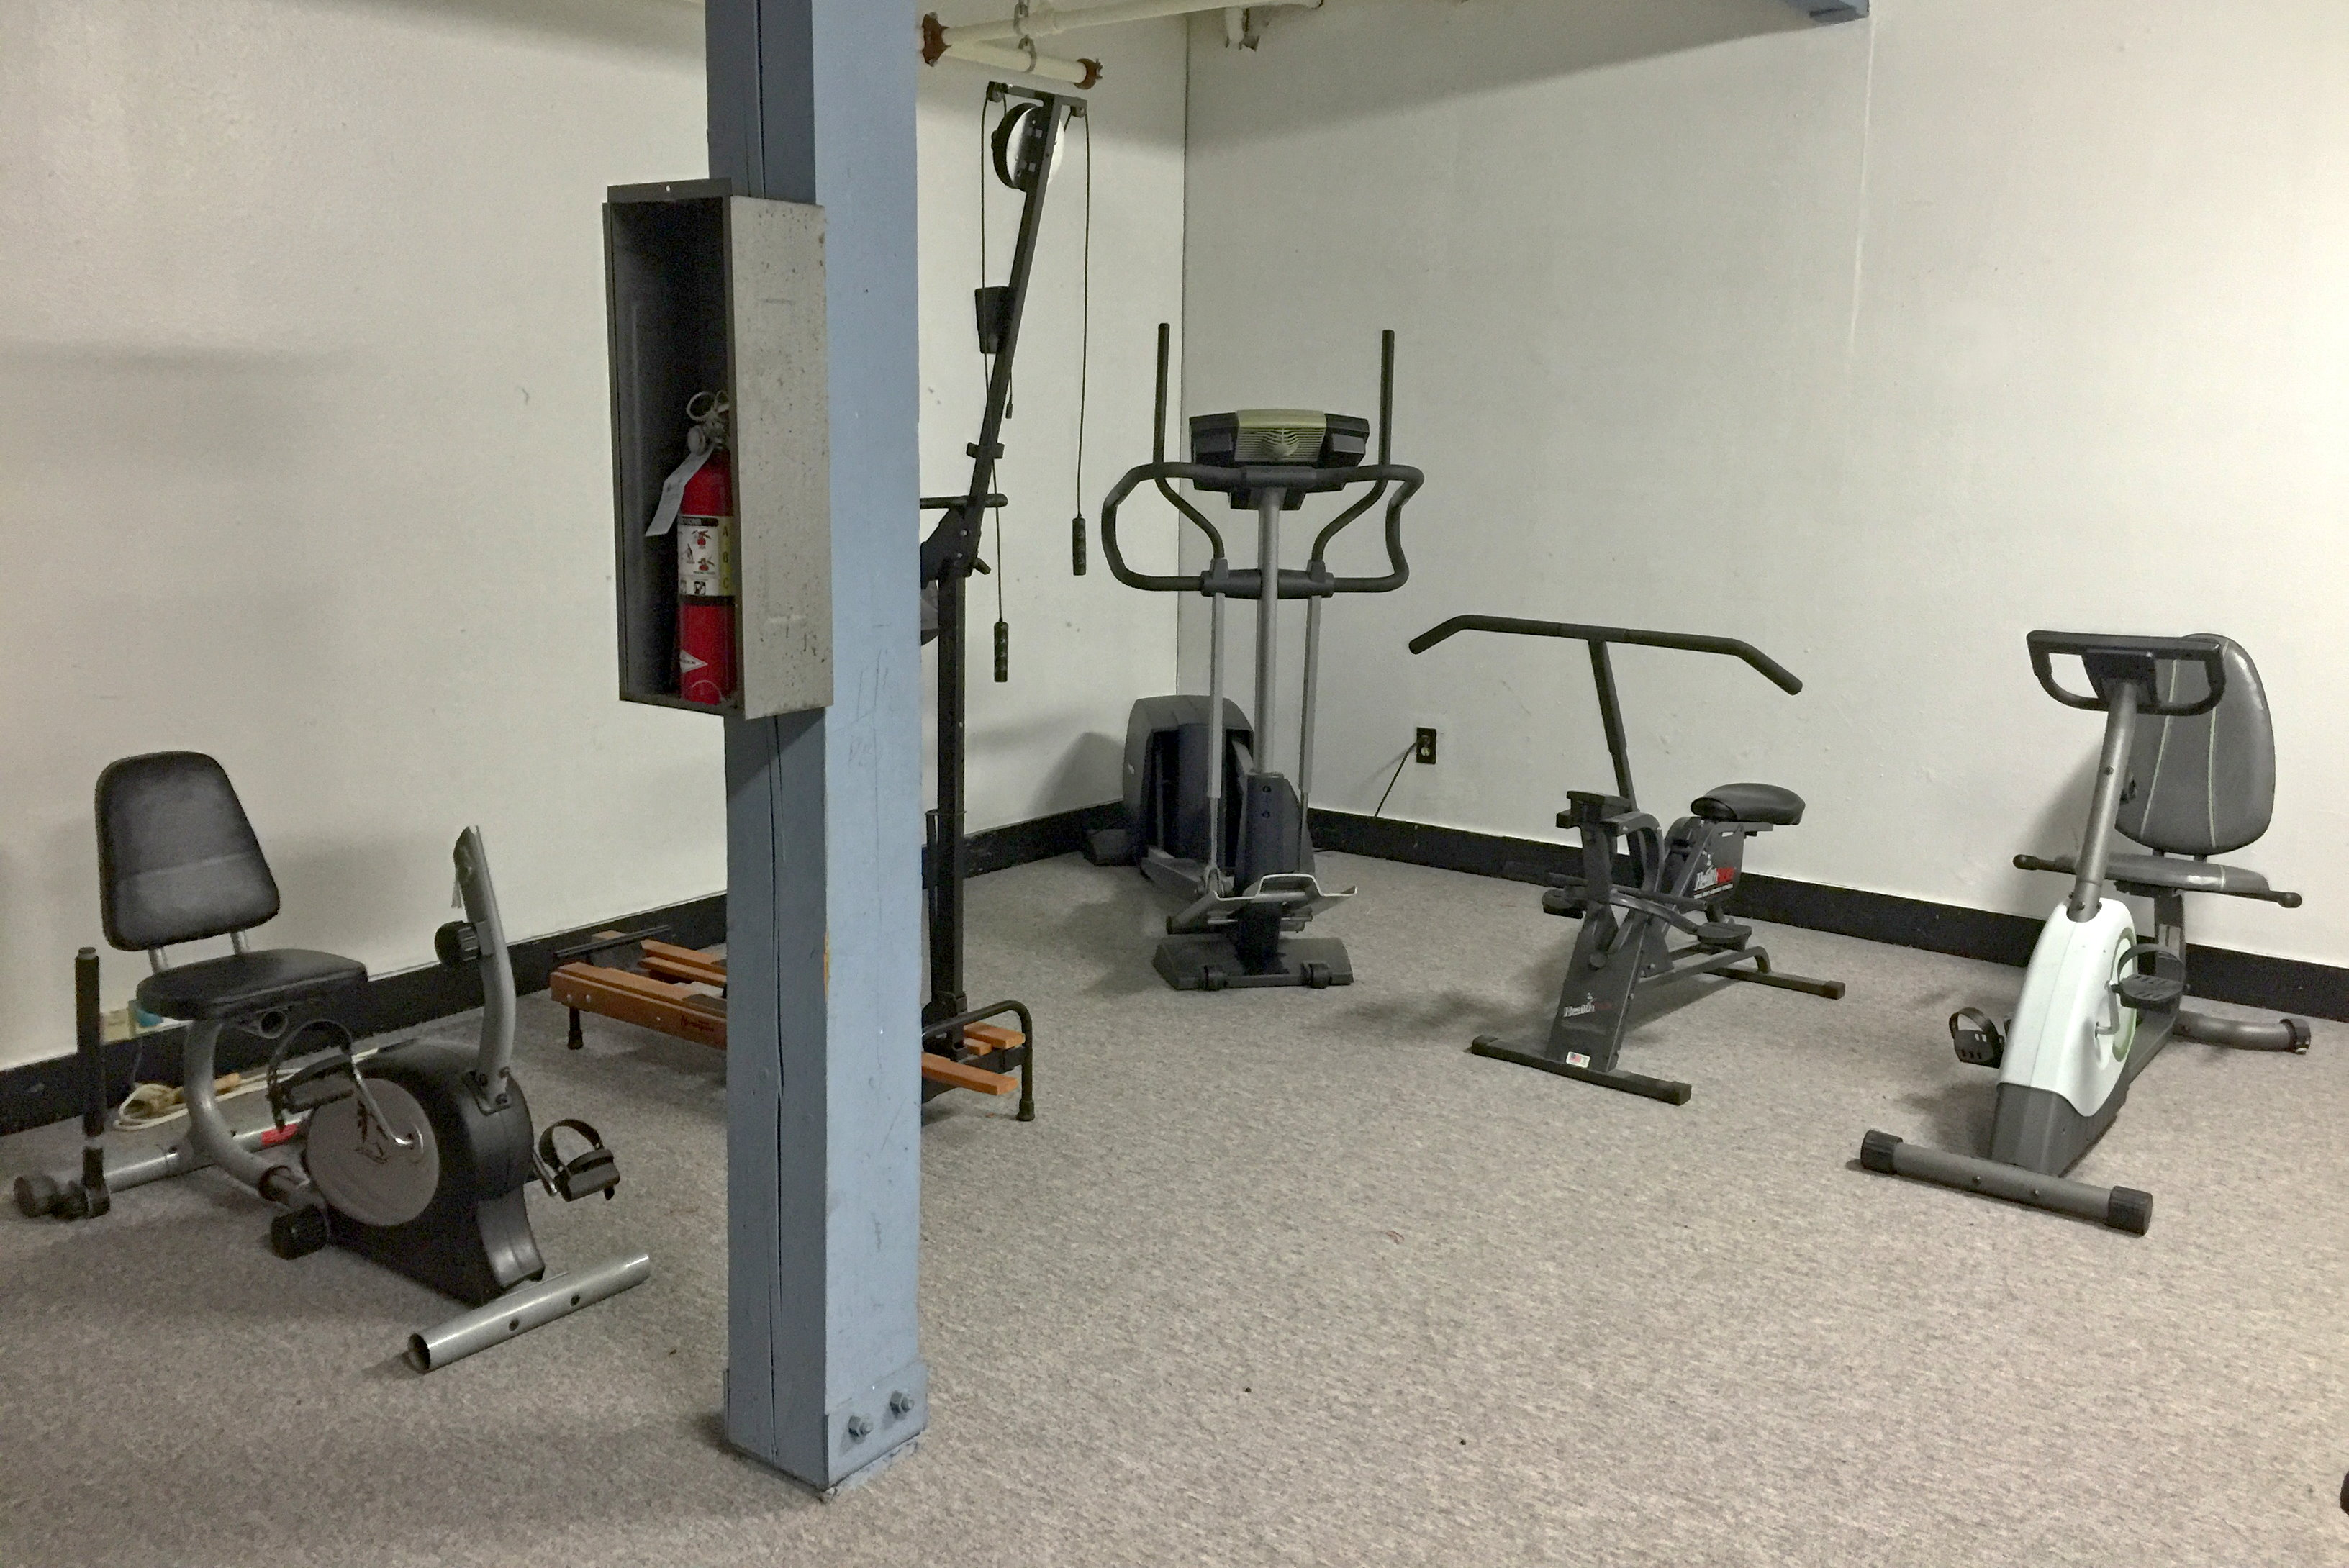 The work out room